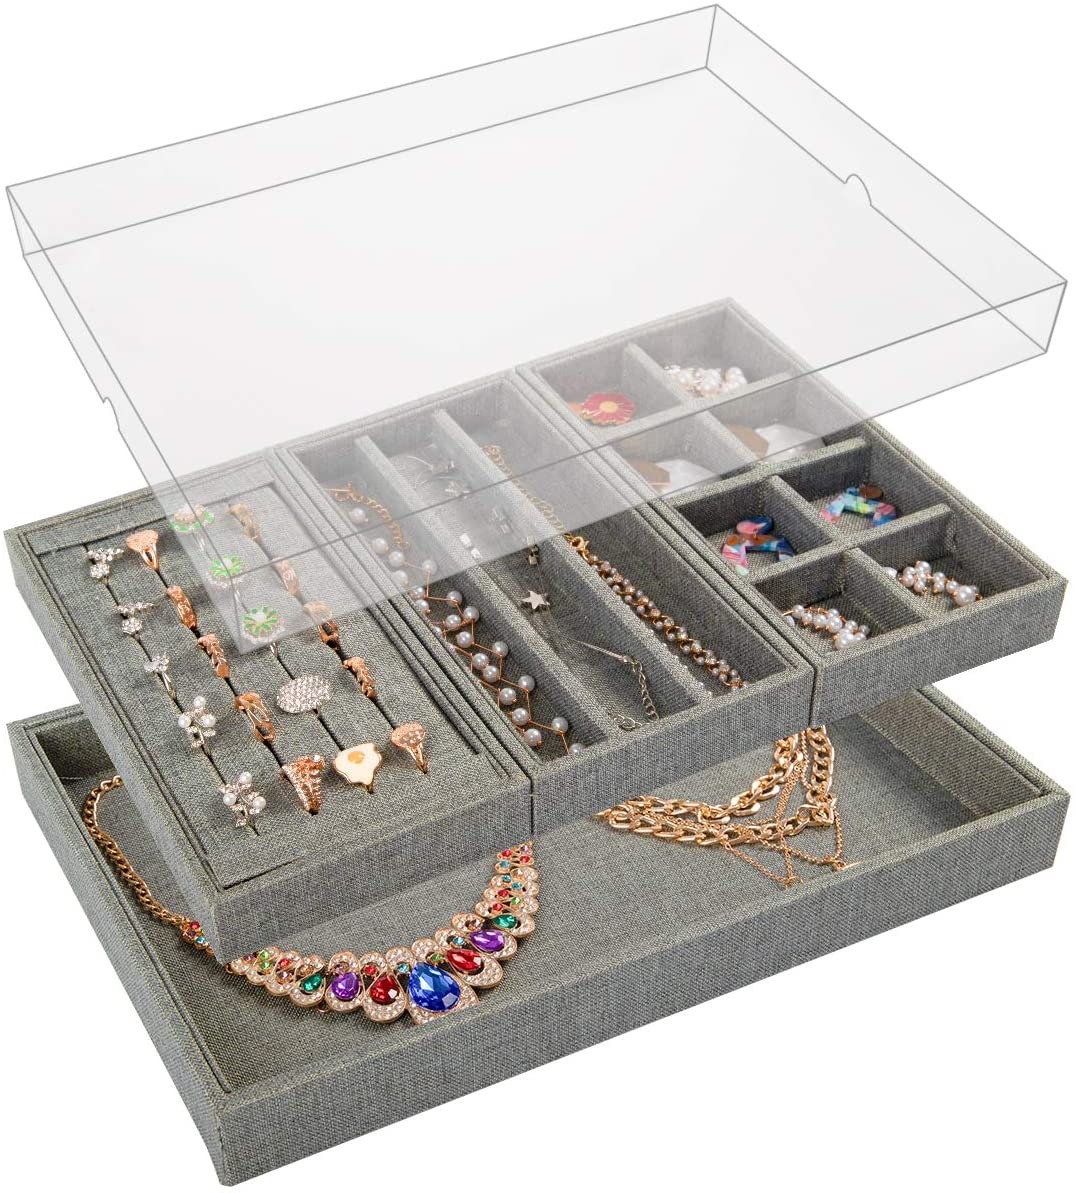 Mebbay Sackcloth Jewelry Box with Lid, 4 in One Stackable Jewelry Accessary Tray Display Storage, for Organizing Ring Stud, Necklace